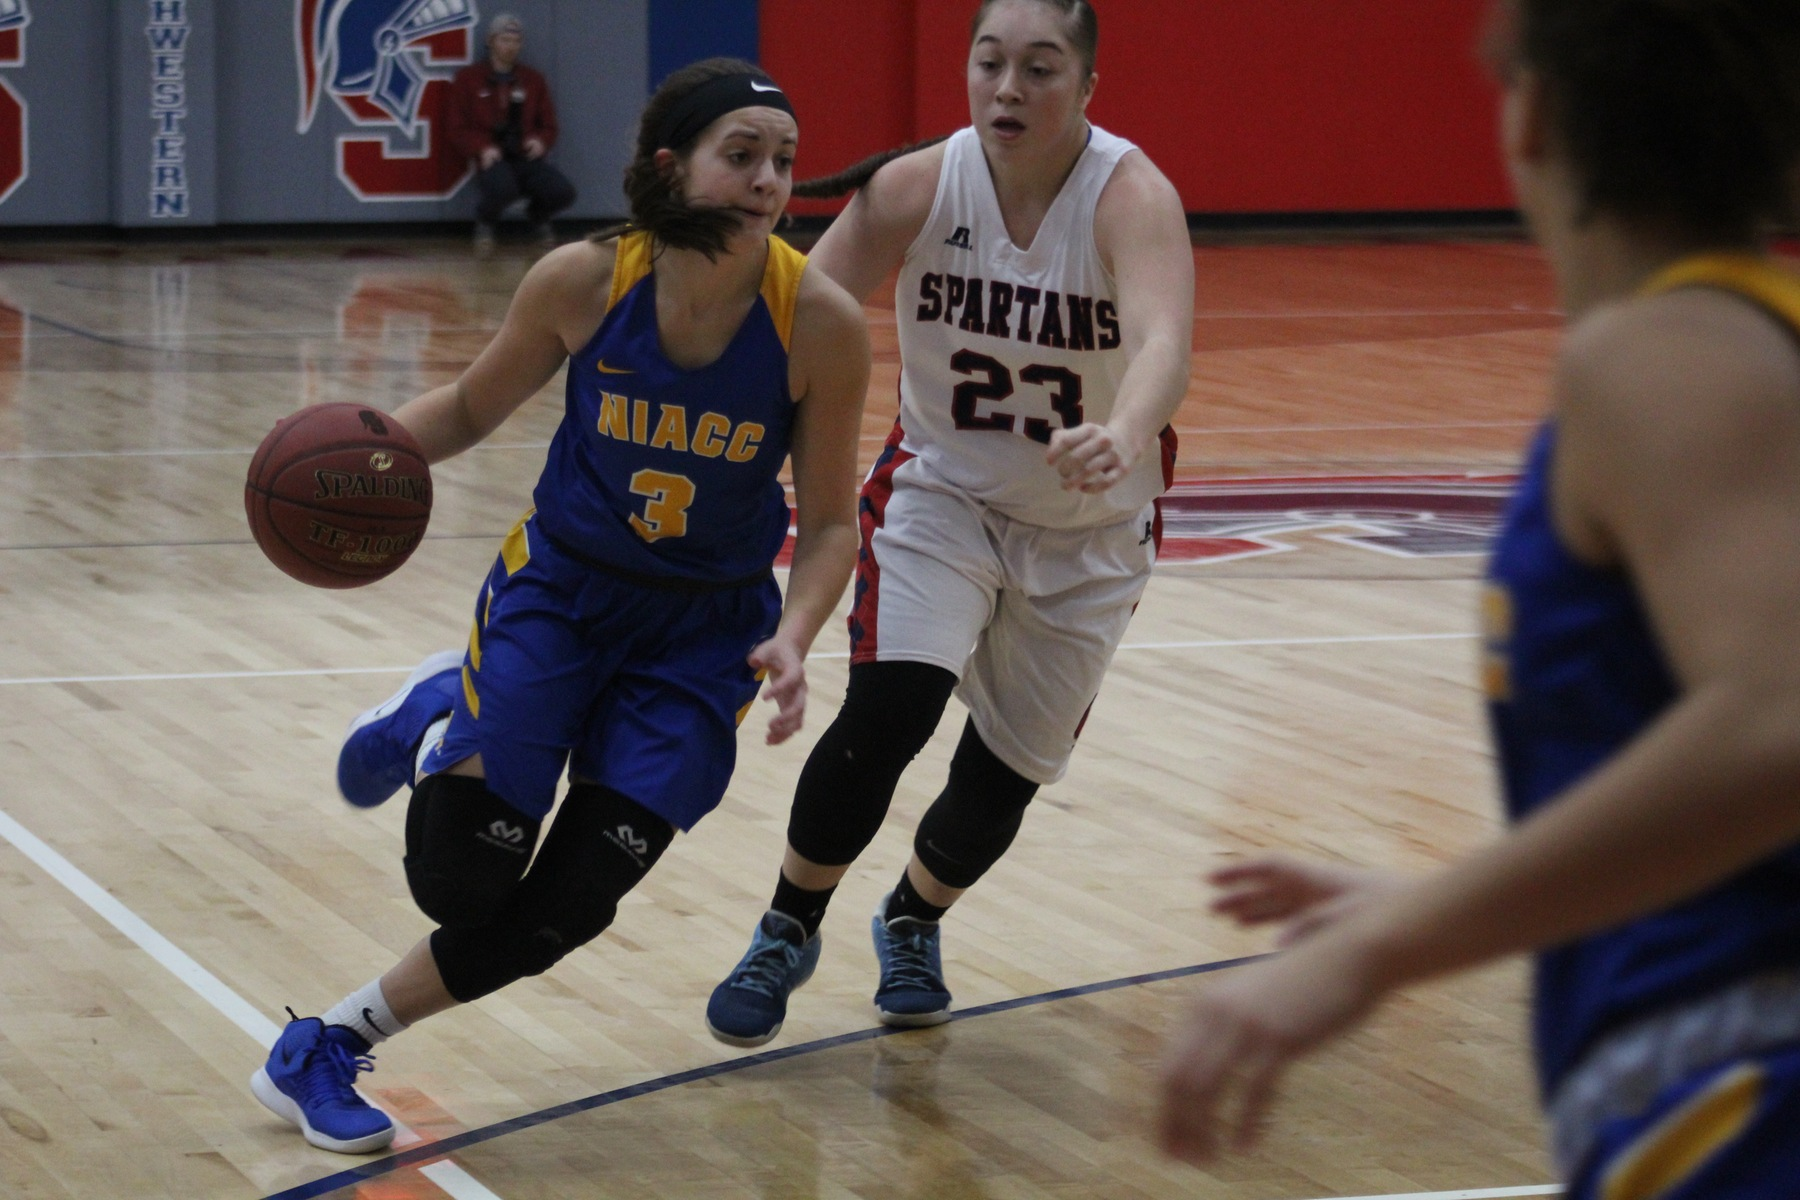 NIACC's Mandy Willems drives to the basket in Saturday's ICCAC contest against Southwestern.